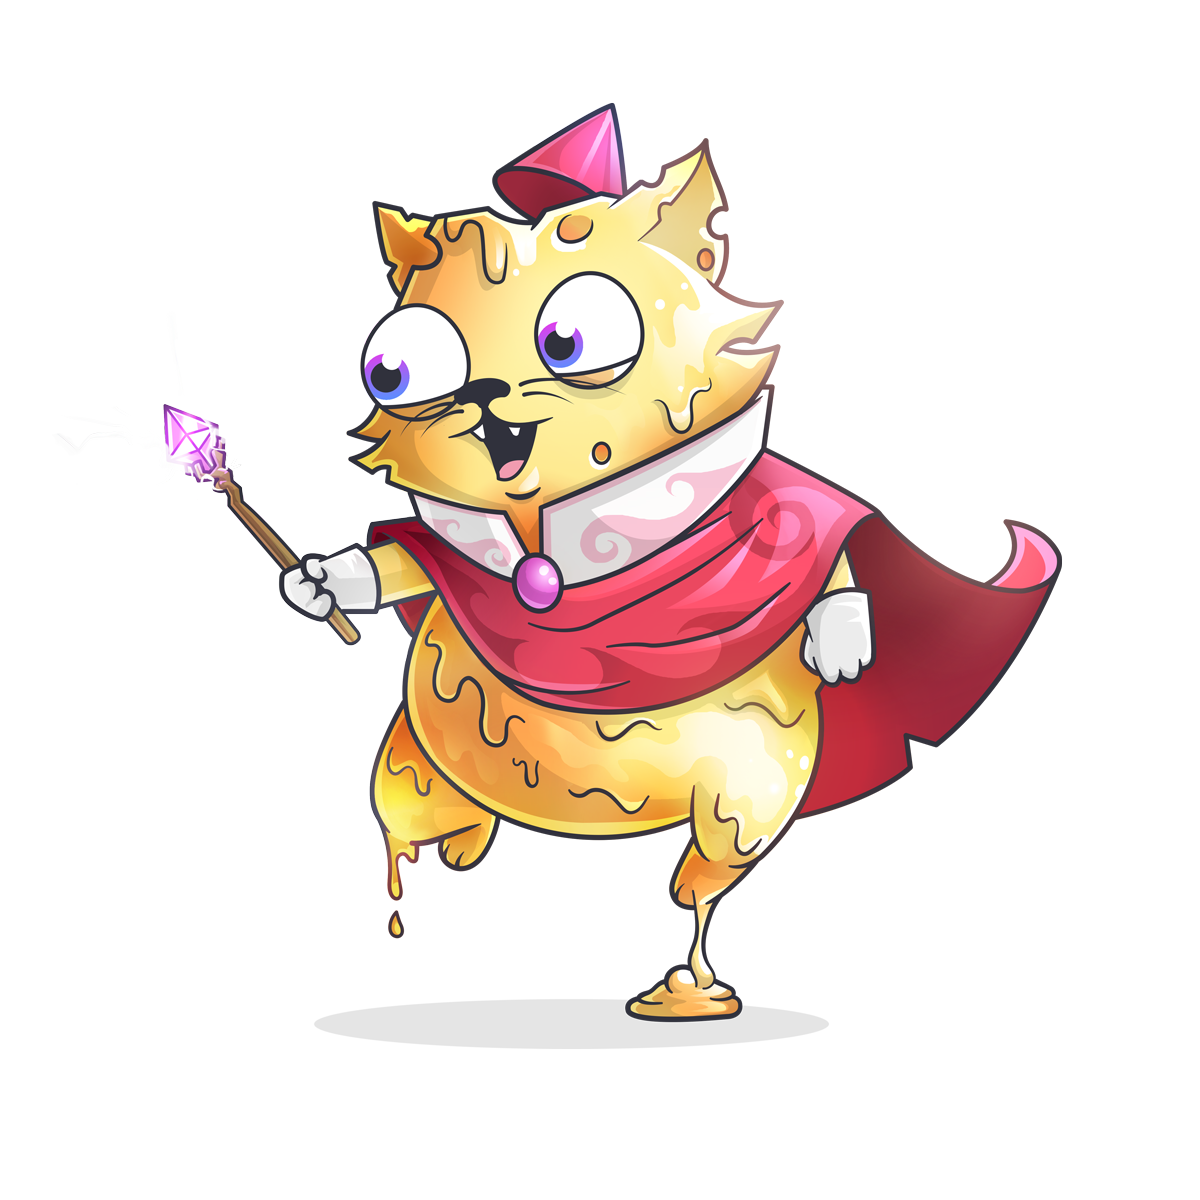 cryptokitty #1587685